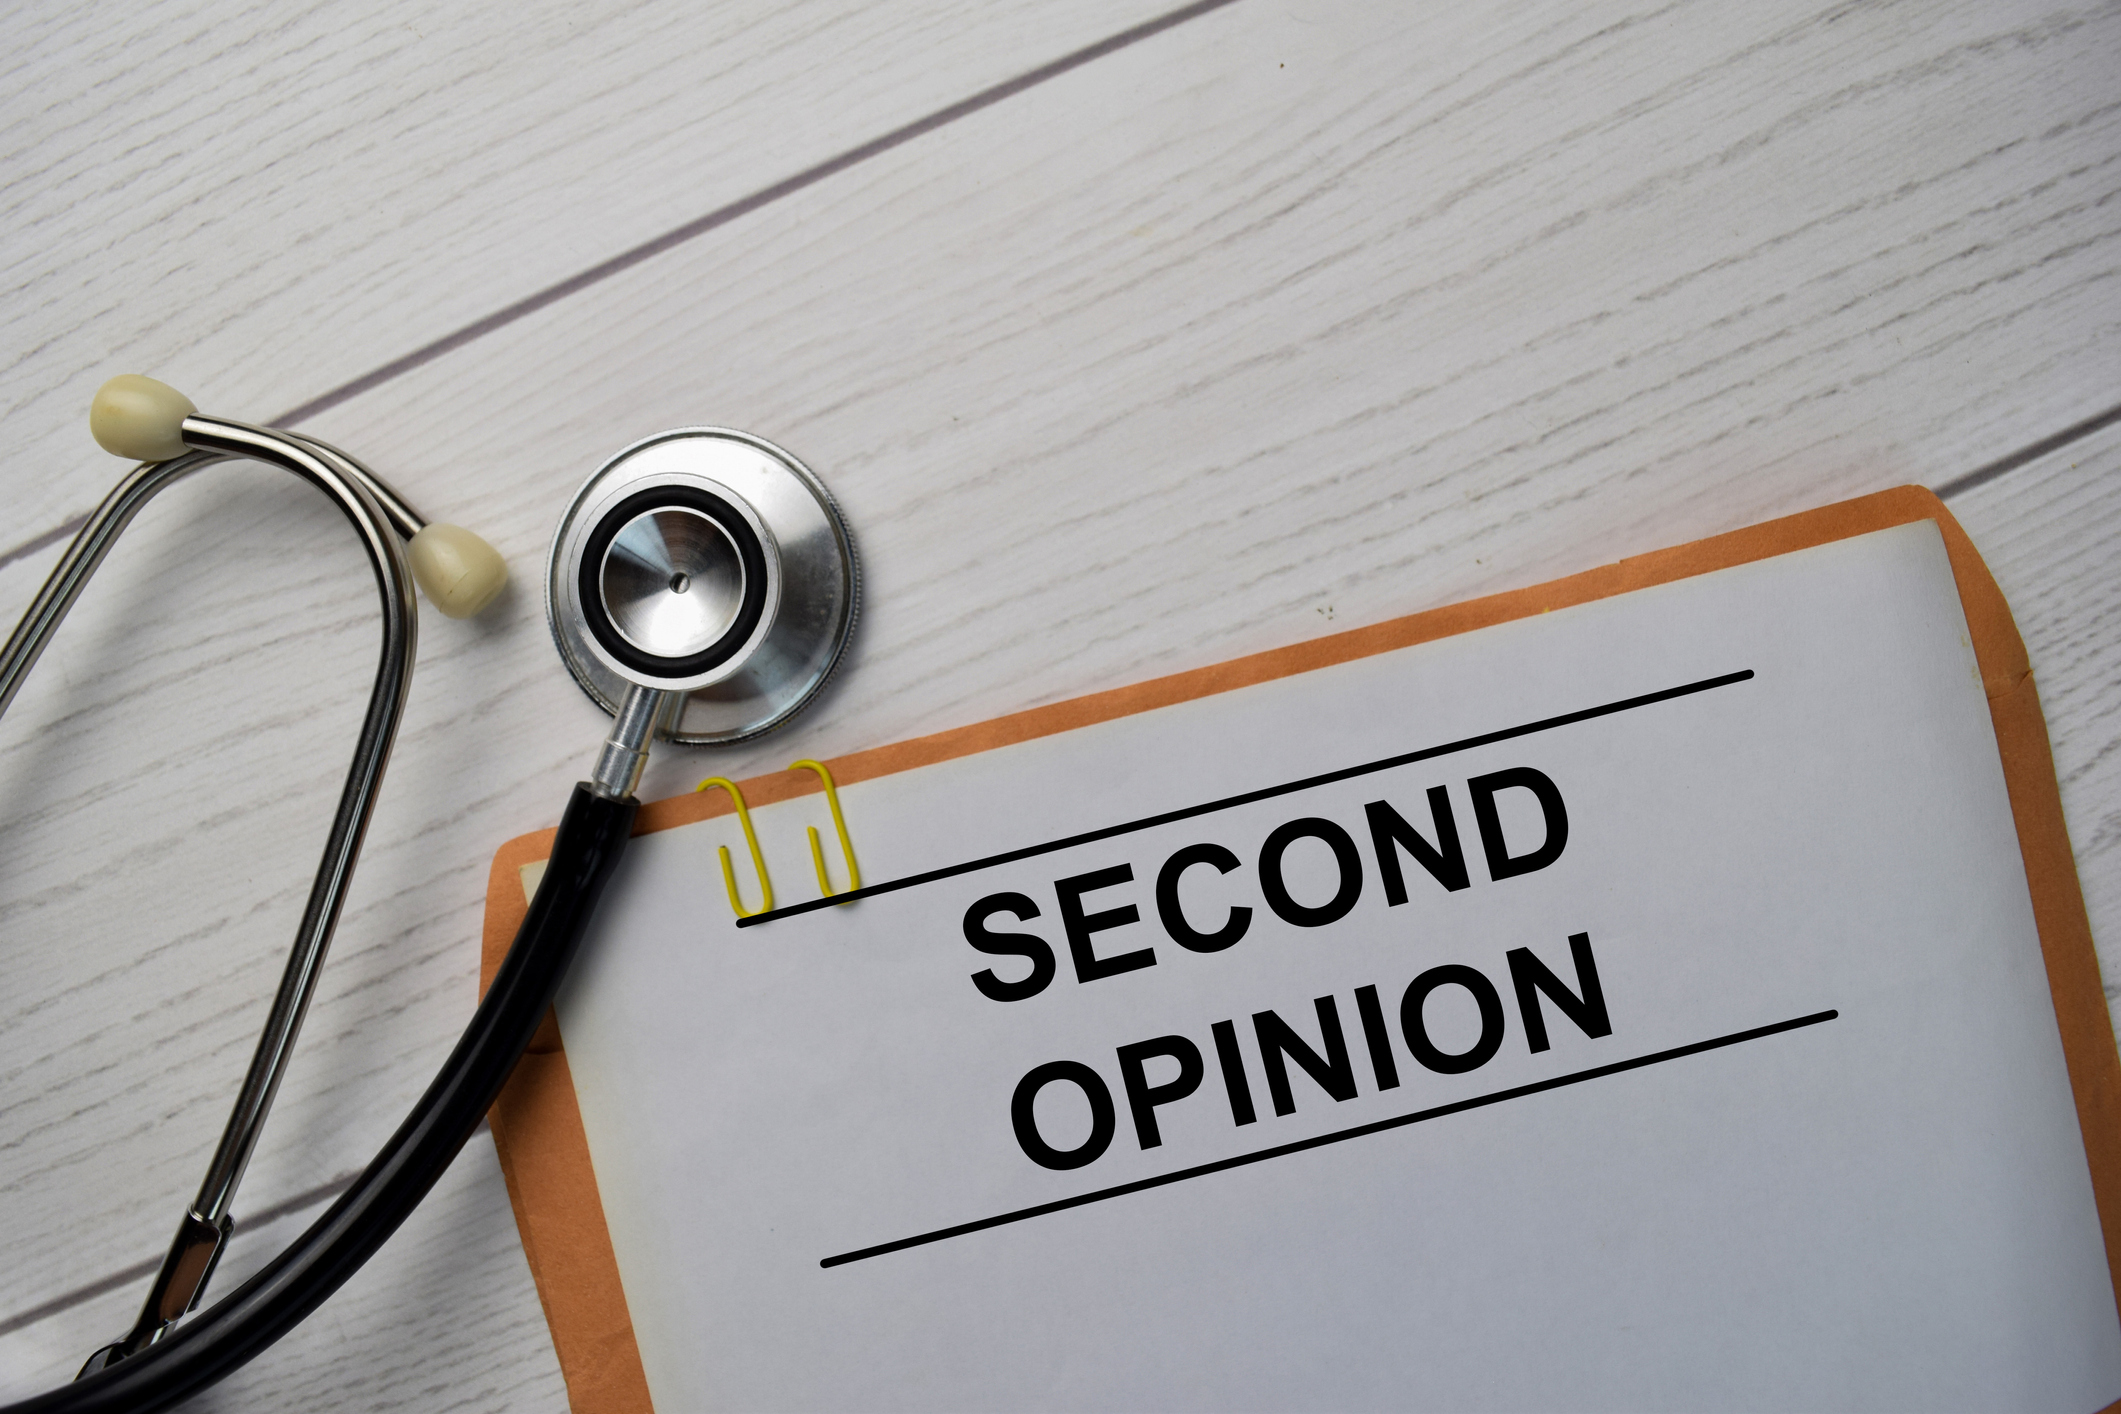 Should You Consider A Second Opionon for Your Vascular Health?